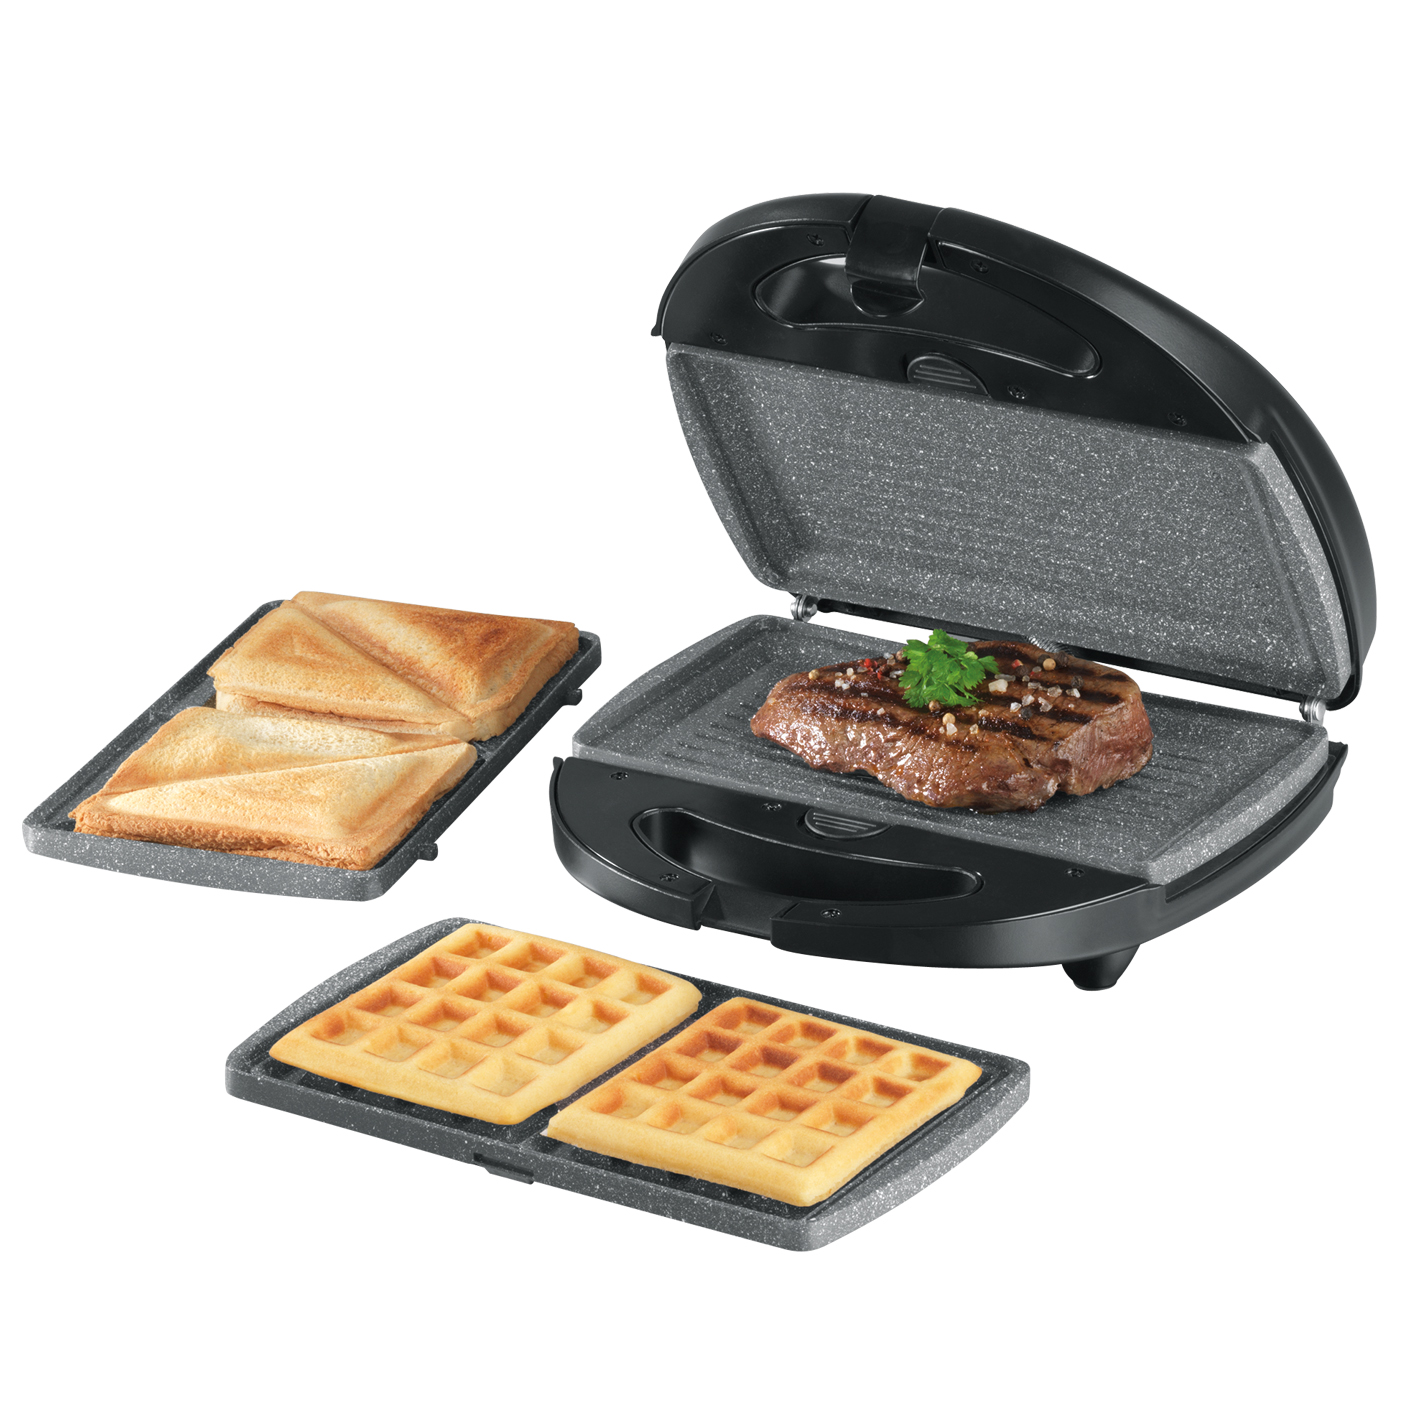 gourmetmaxx tischgrill granit optik 800w sandwichtoaster ebay. Black Bedroom Furniture Sets. Home Design Ideas